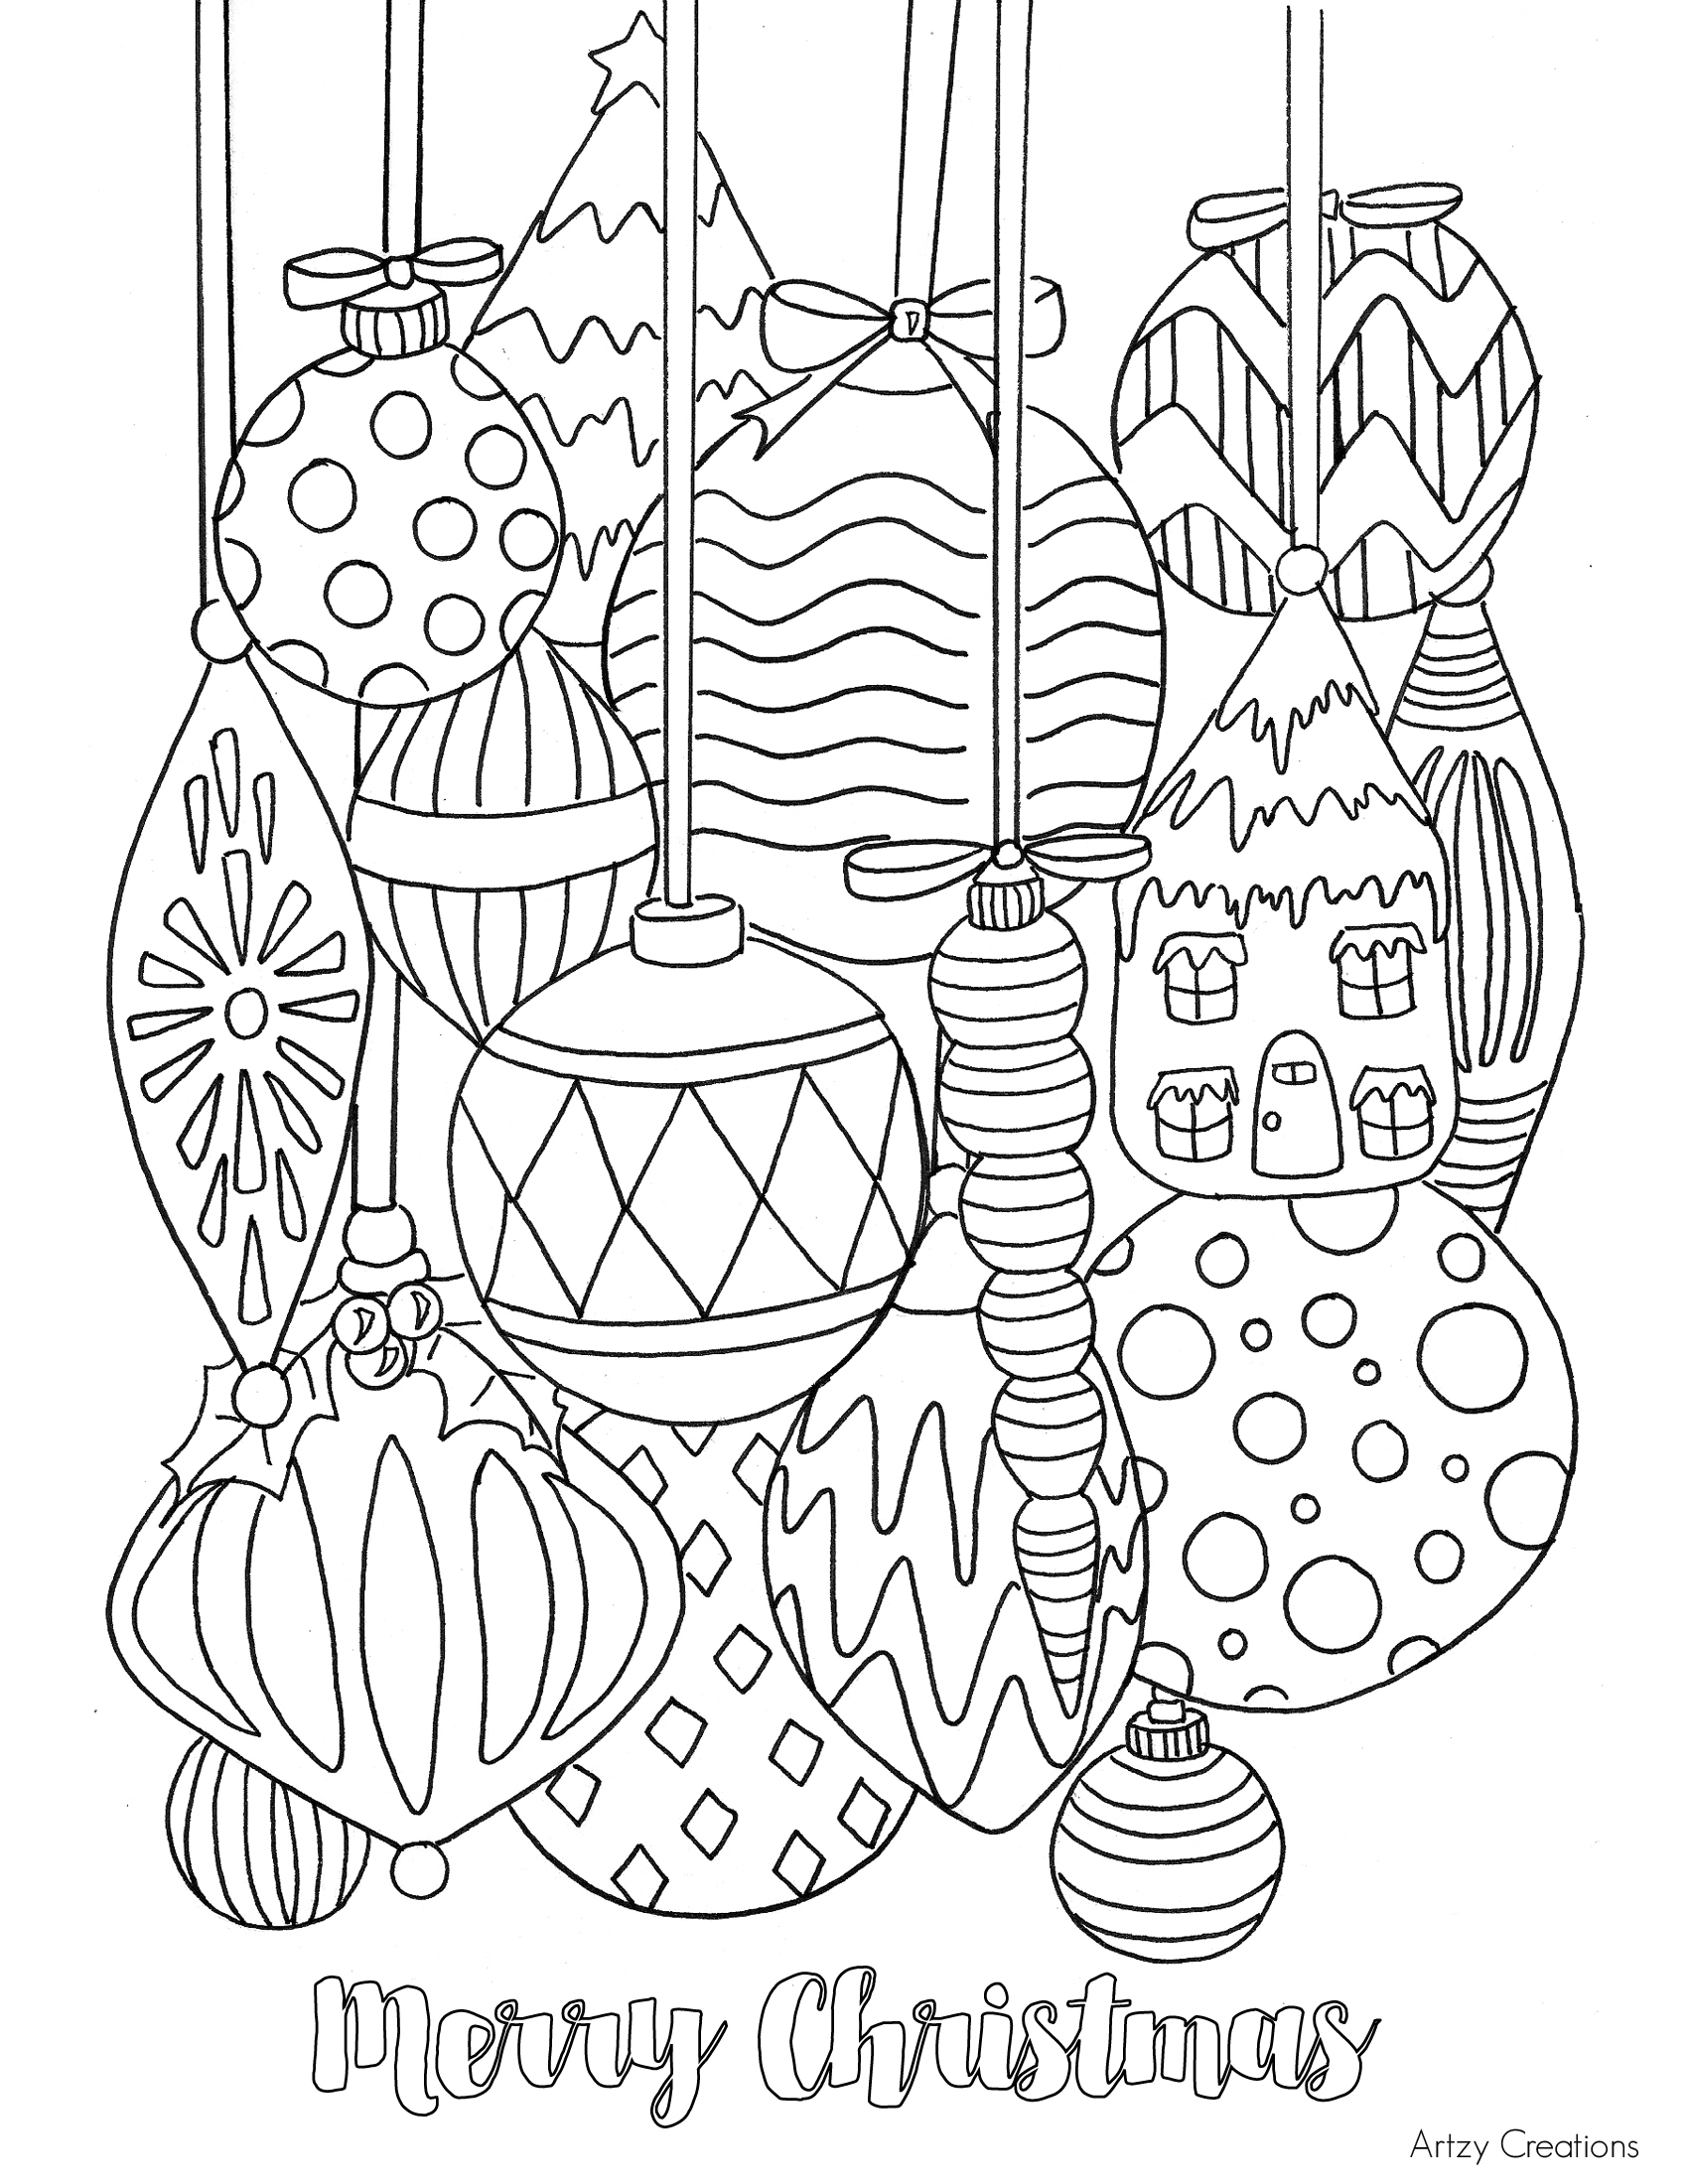 Merry Christmas Grandma Coloring Pages With Free Ornament Page TGIF This Is Fun